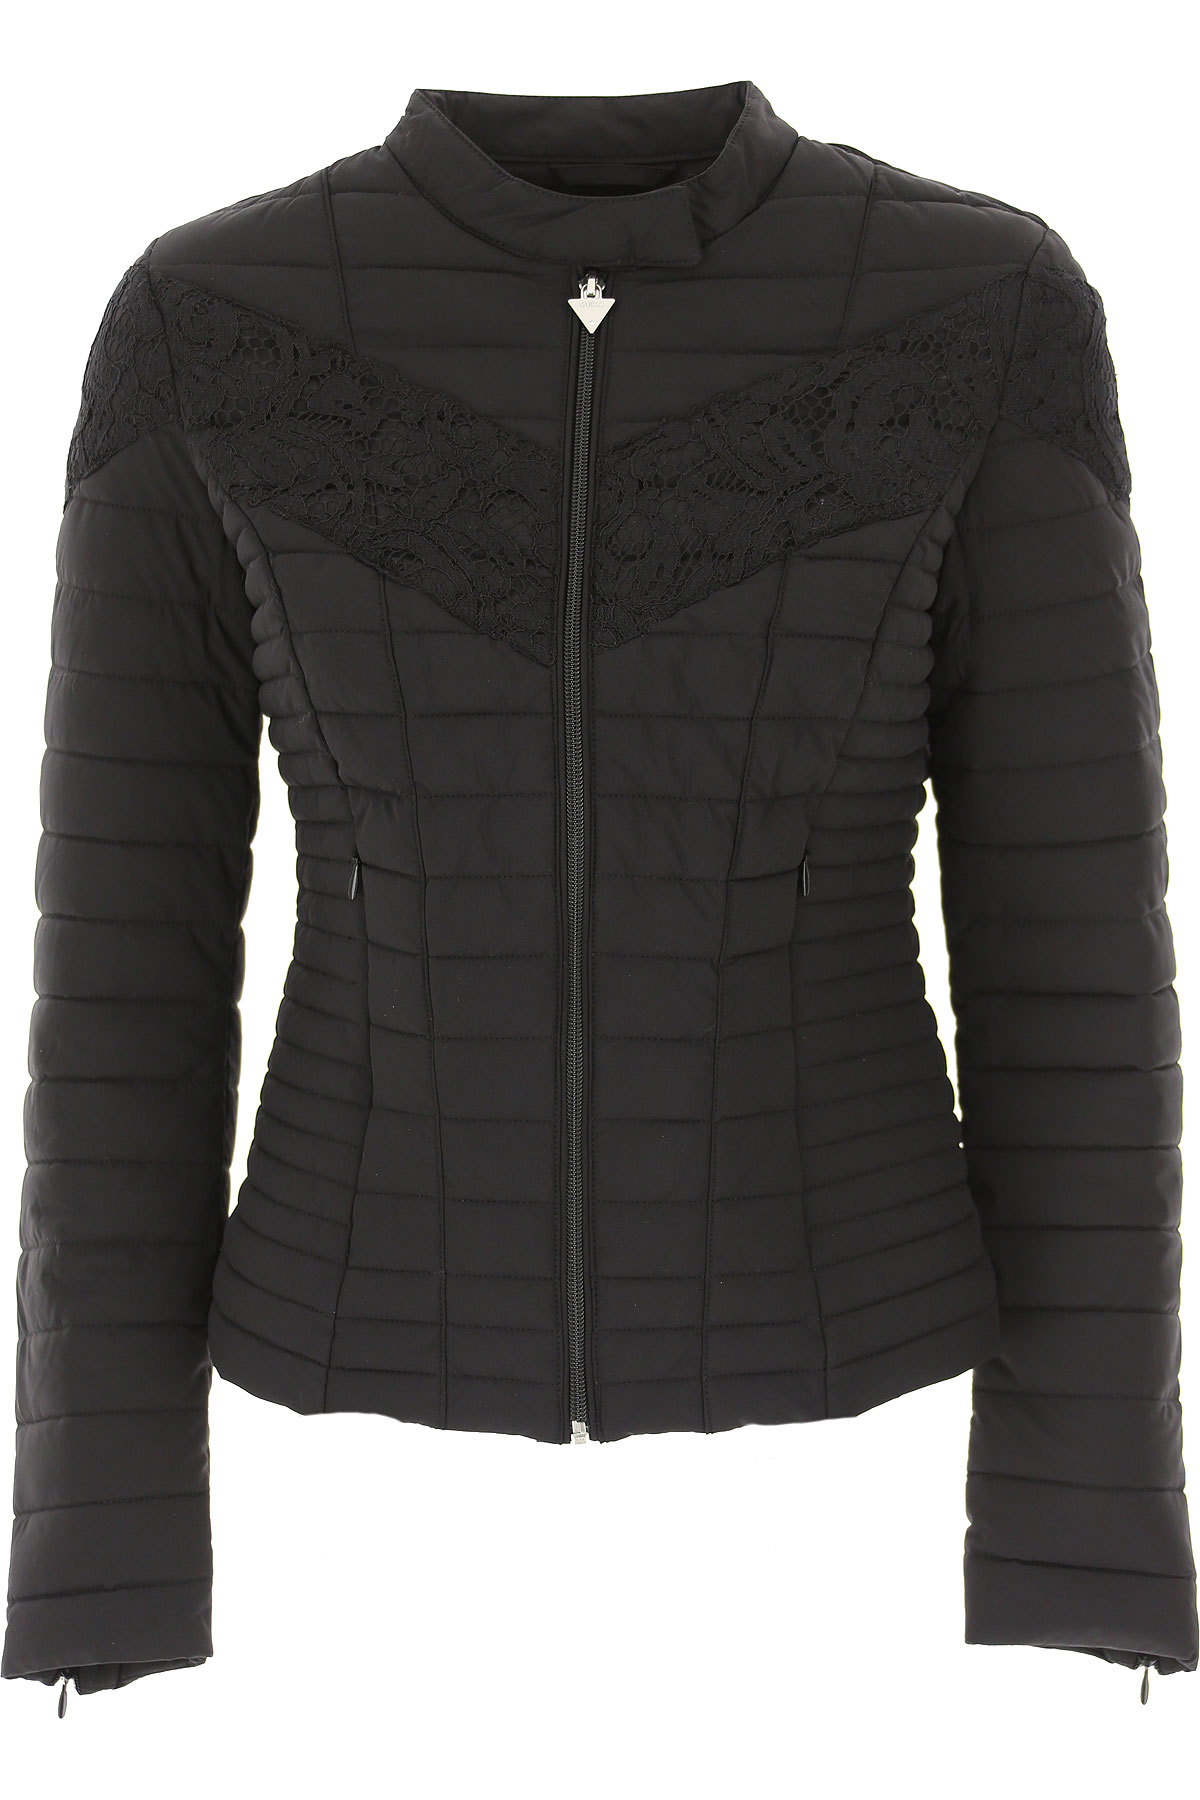 Guess Jacket for Women On Sale, Black, polyester, 2019, 2 6 8